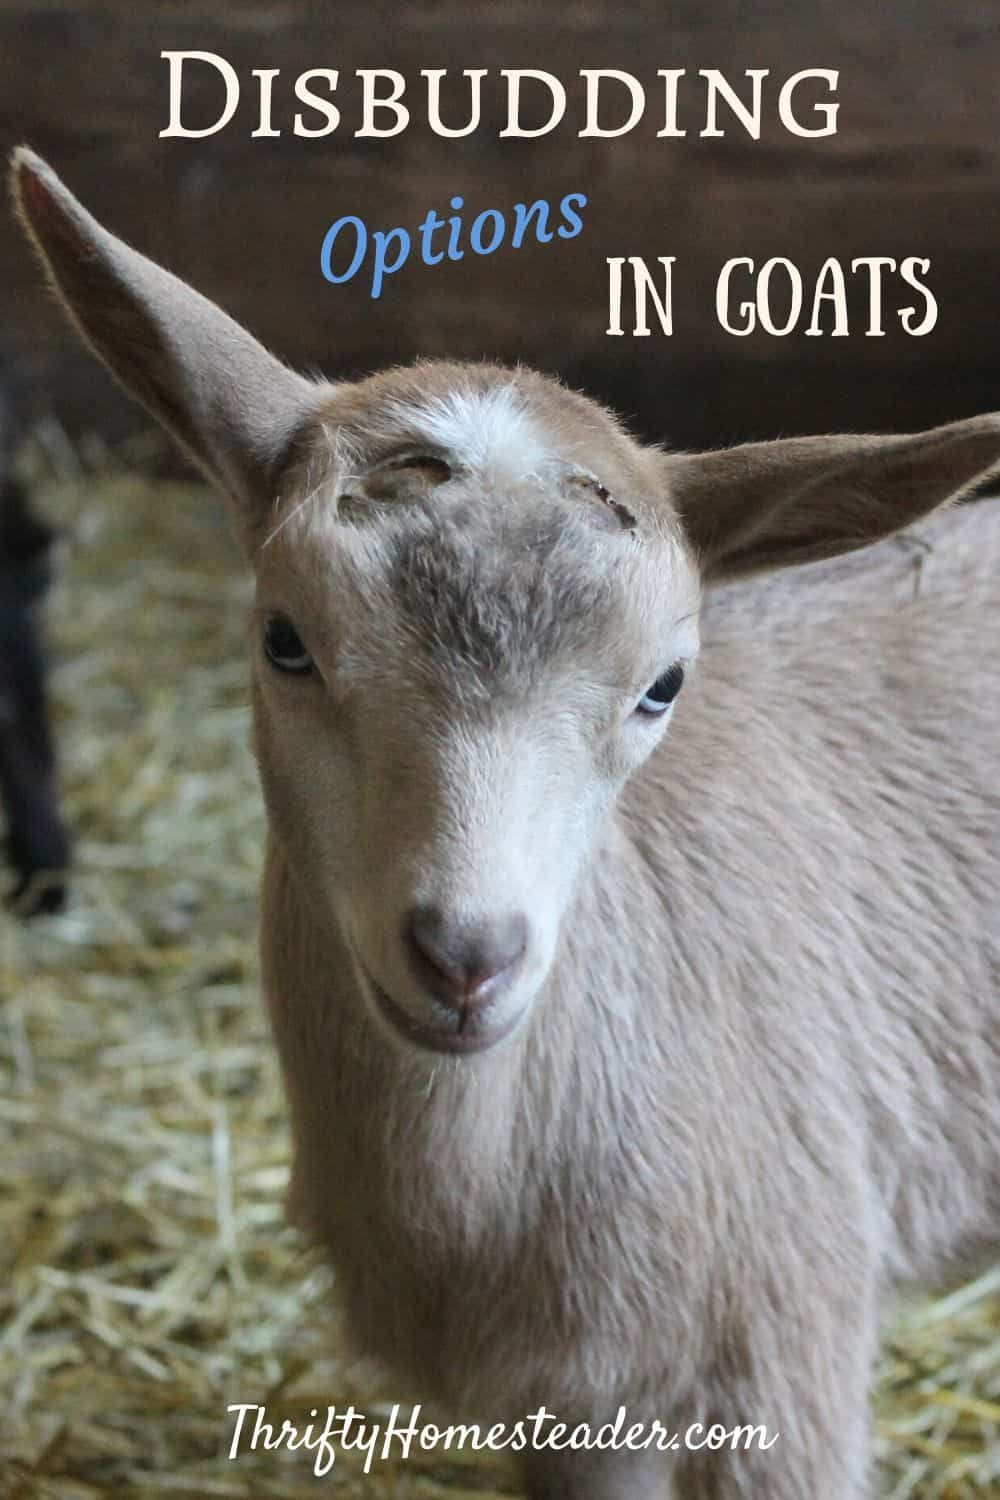 Goat Disbudding Options The Thrifty Homesteader In 2020 Goats Keeping Goats Breeding Goats